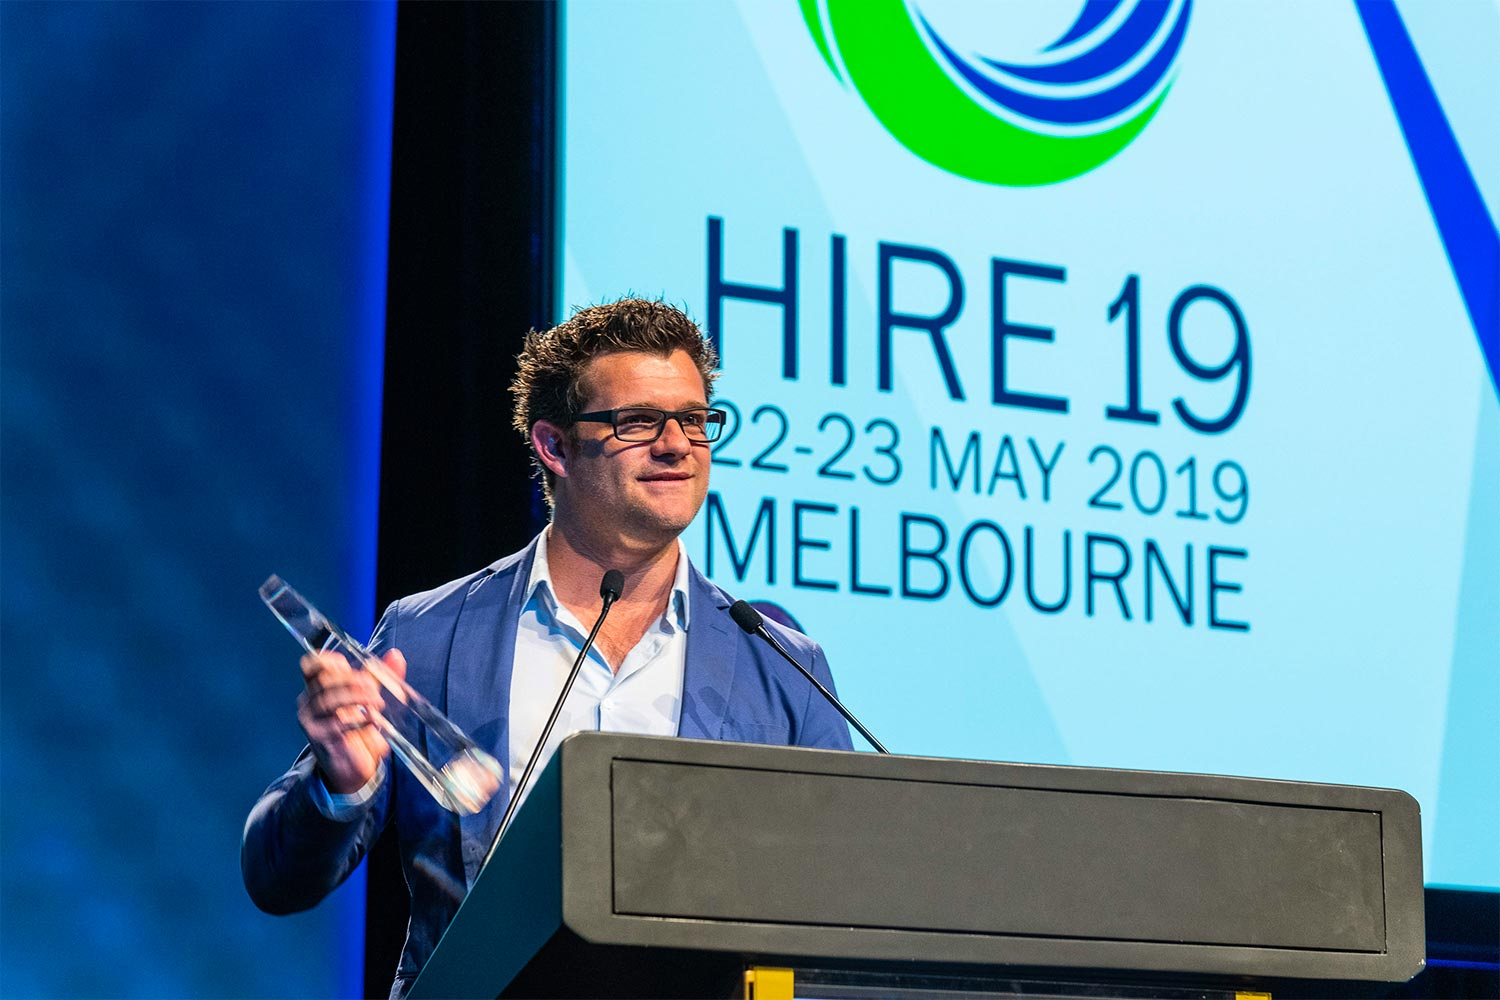 HIRE 19 Awards – Vansite takes out Supplier of the Year